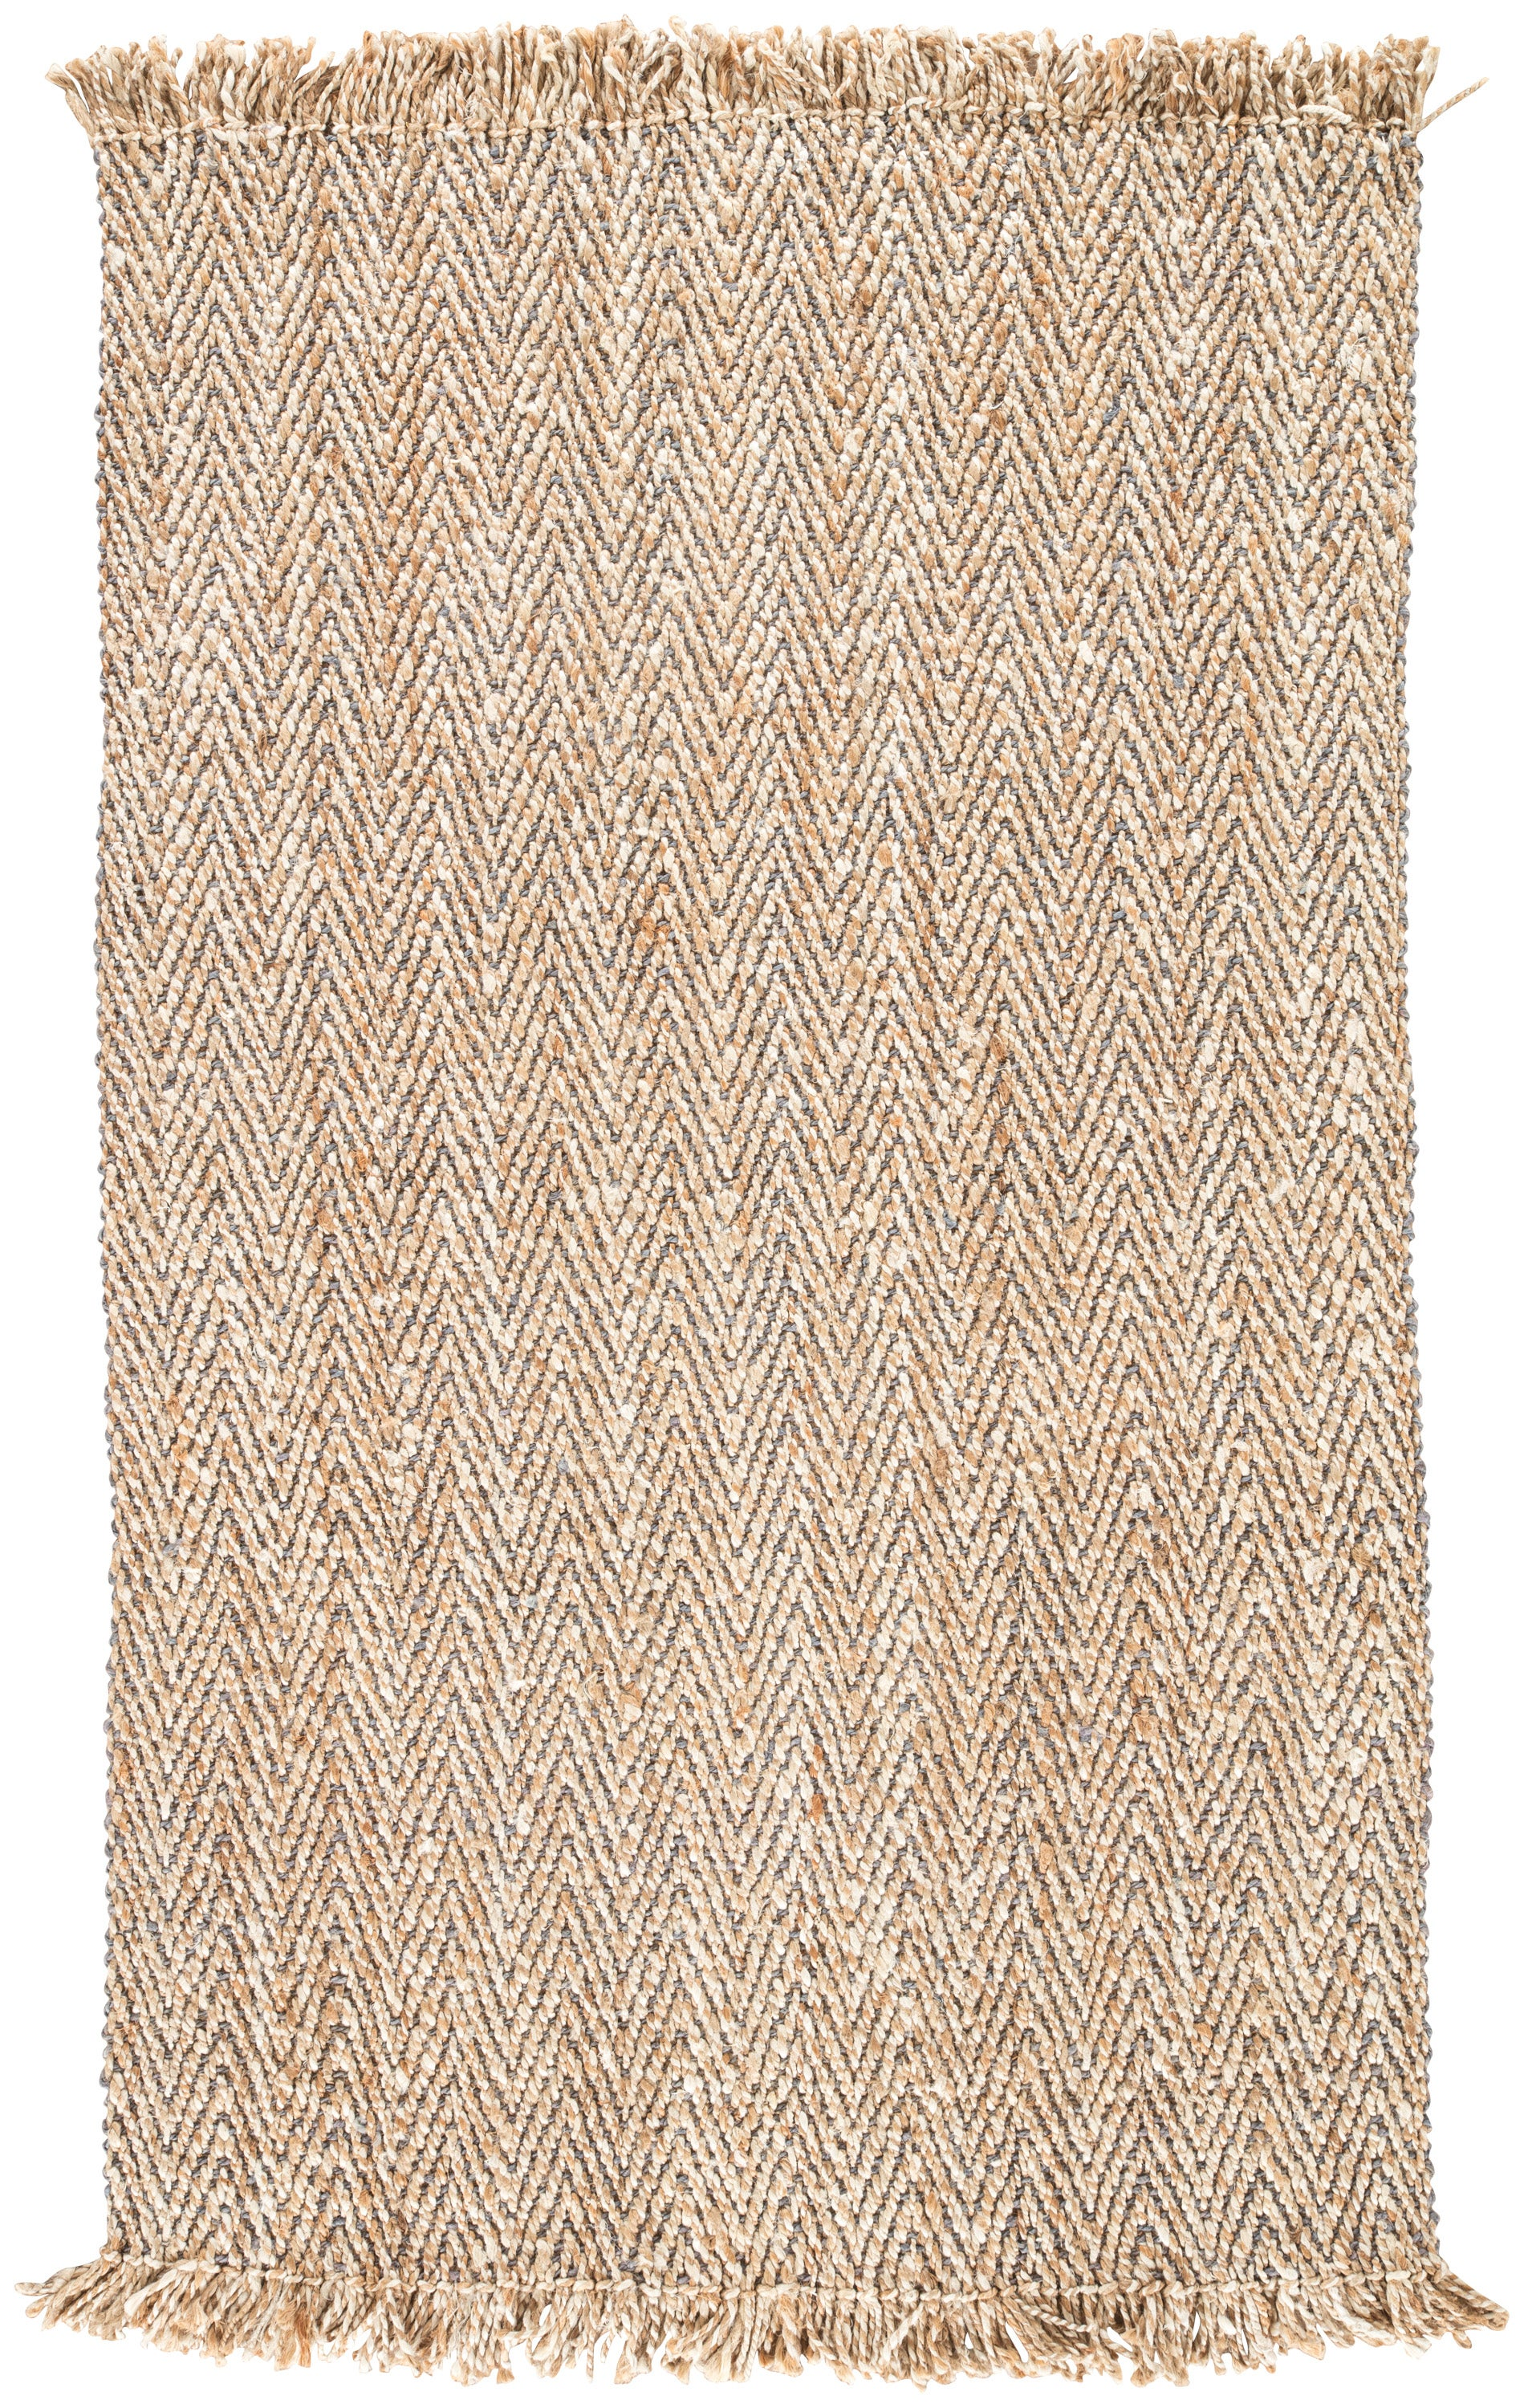 Rectangle Beige Chevron Hand Woven Jute & Natural Fibers Casual recommended for Bedroom, Bathroom, Dining Room, Office, Hallway, Living Room